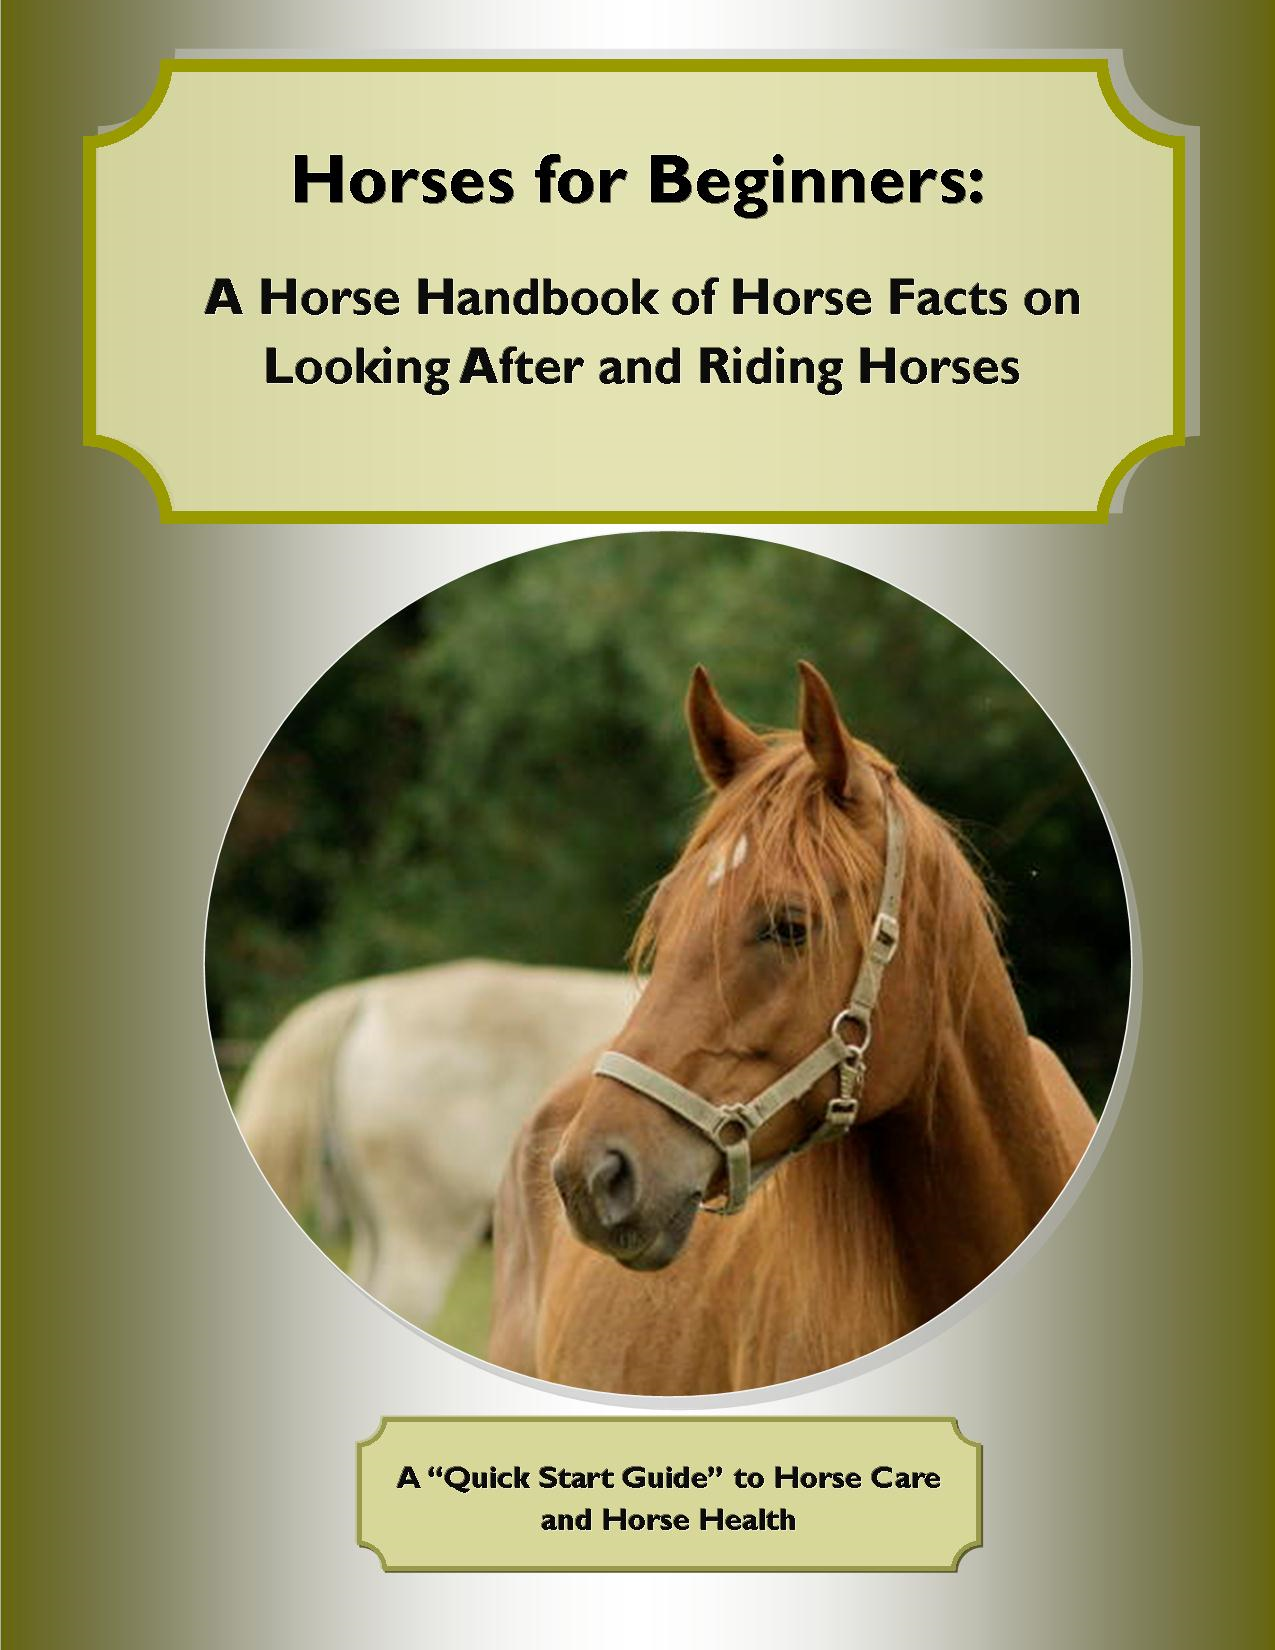 Horses for Beginners: A Horse Handbook of Horse Facts on Looking After and Riding Horses